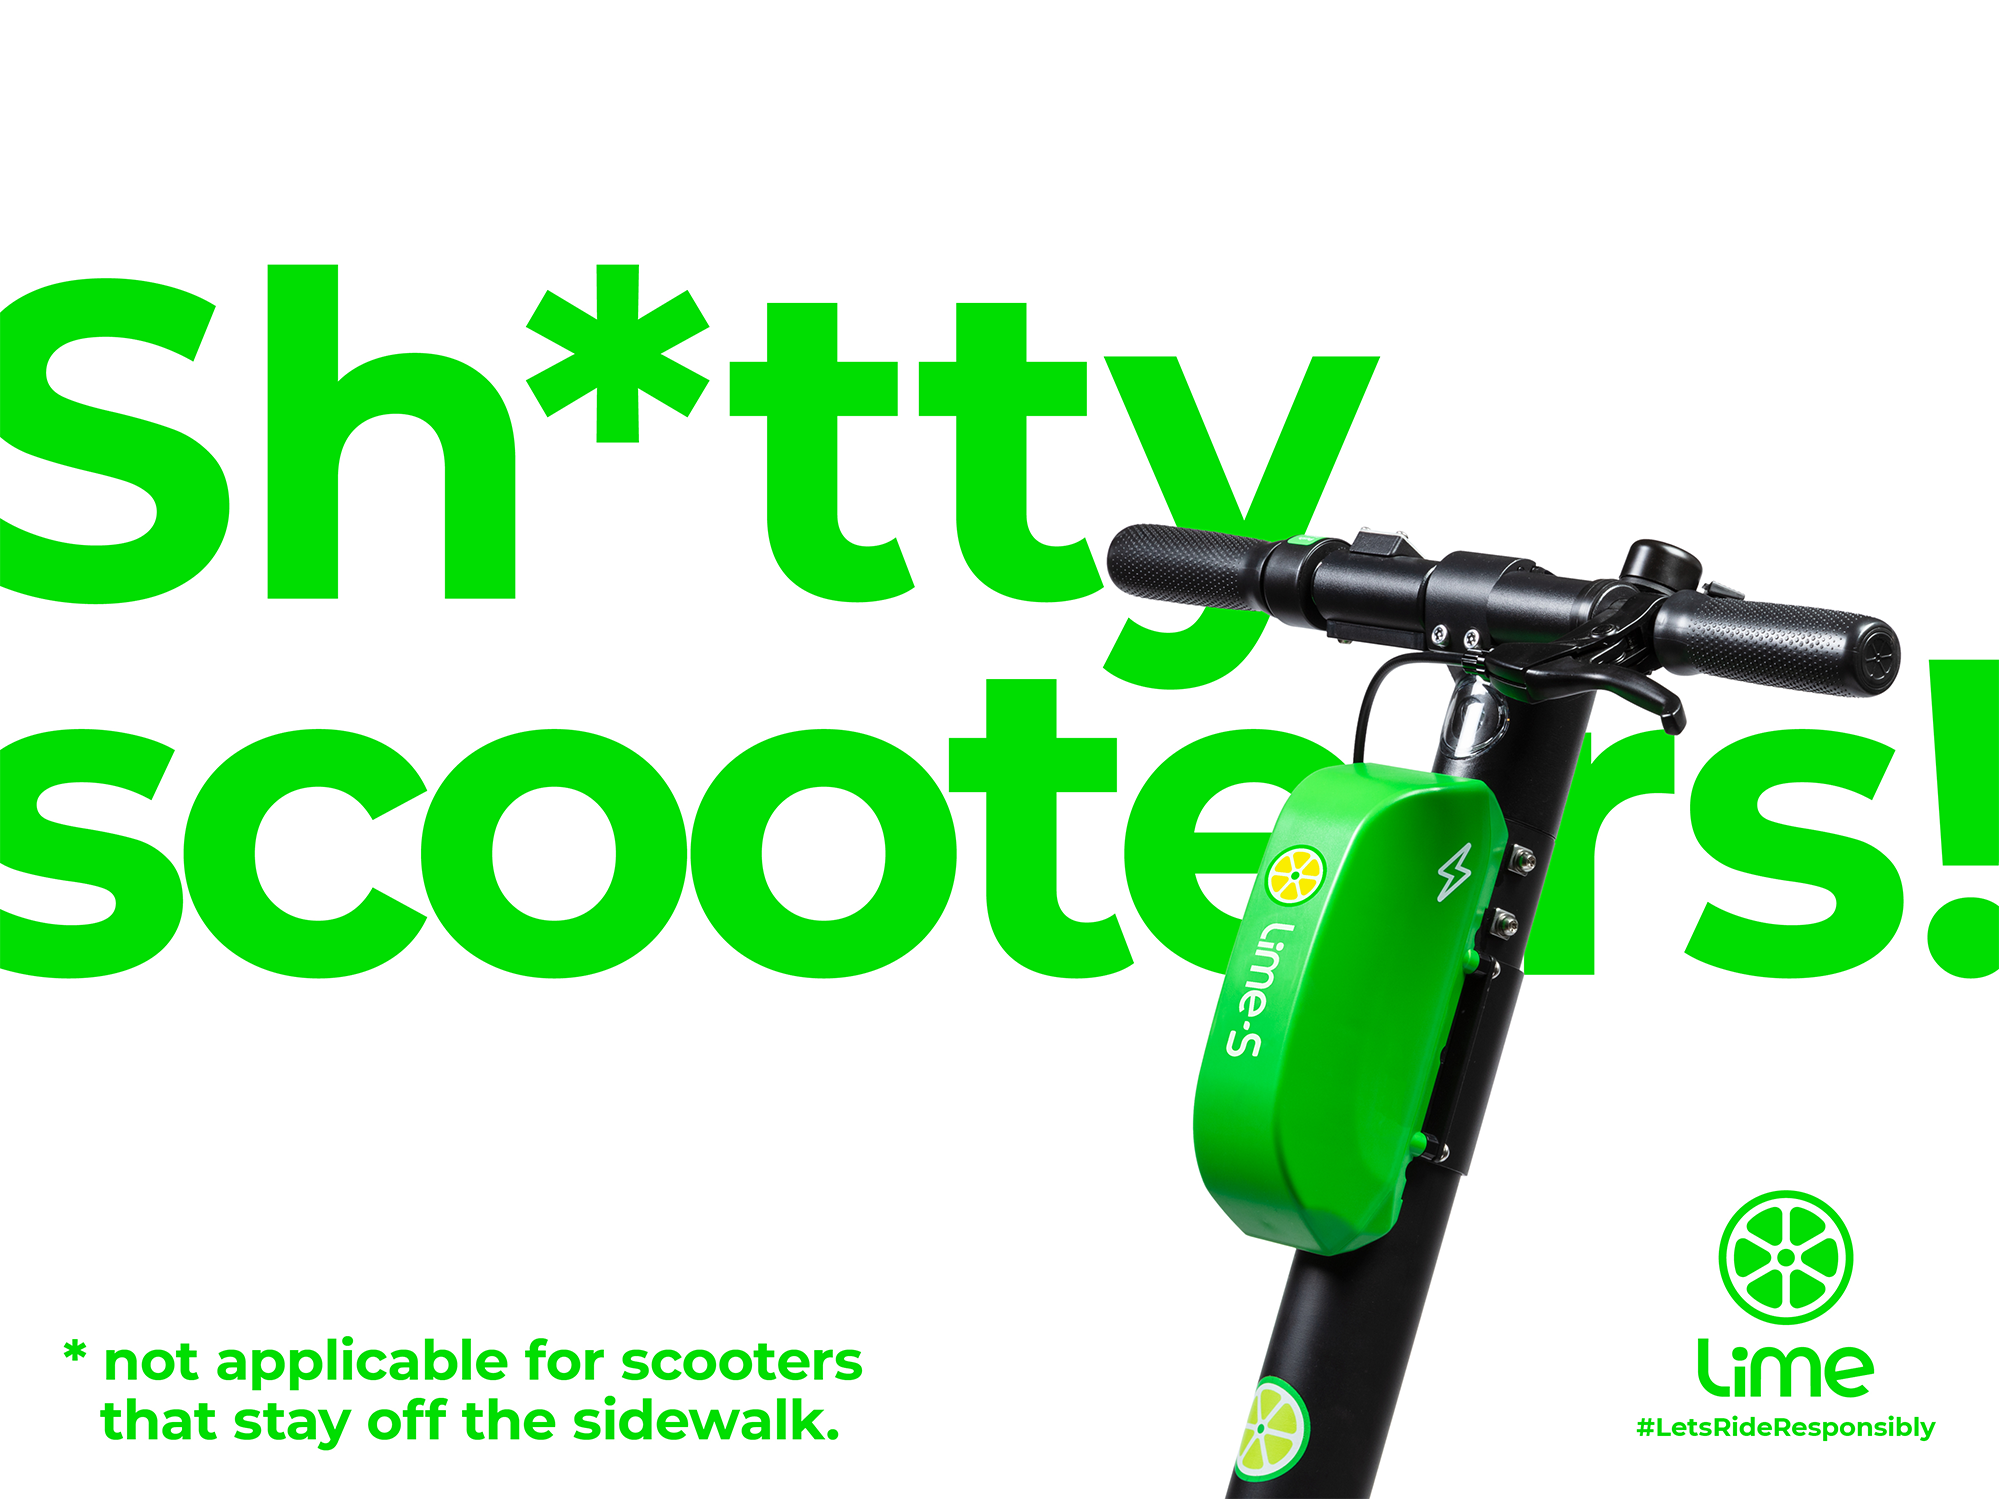 Lime: SH*TTY SCOOTERS